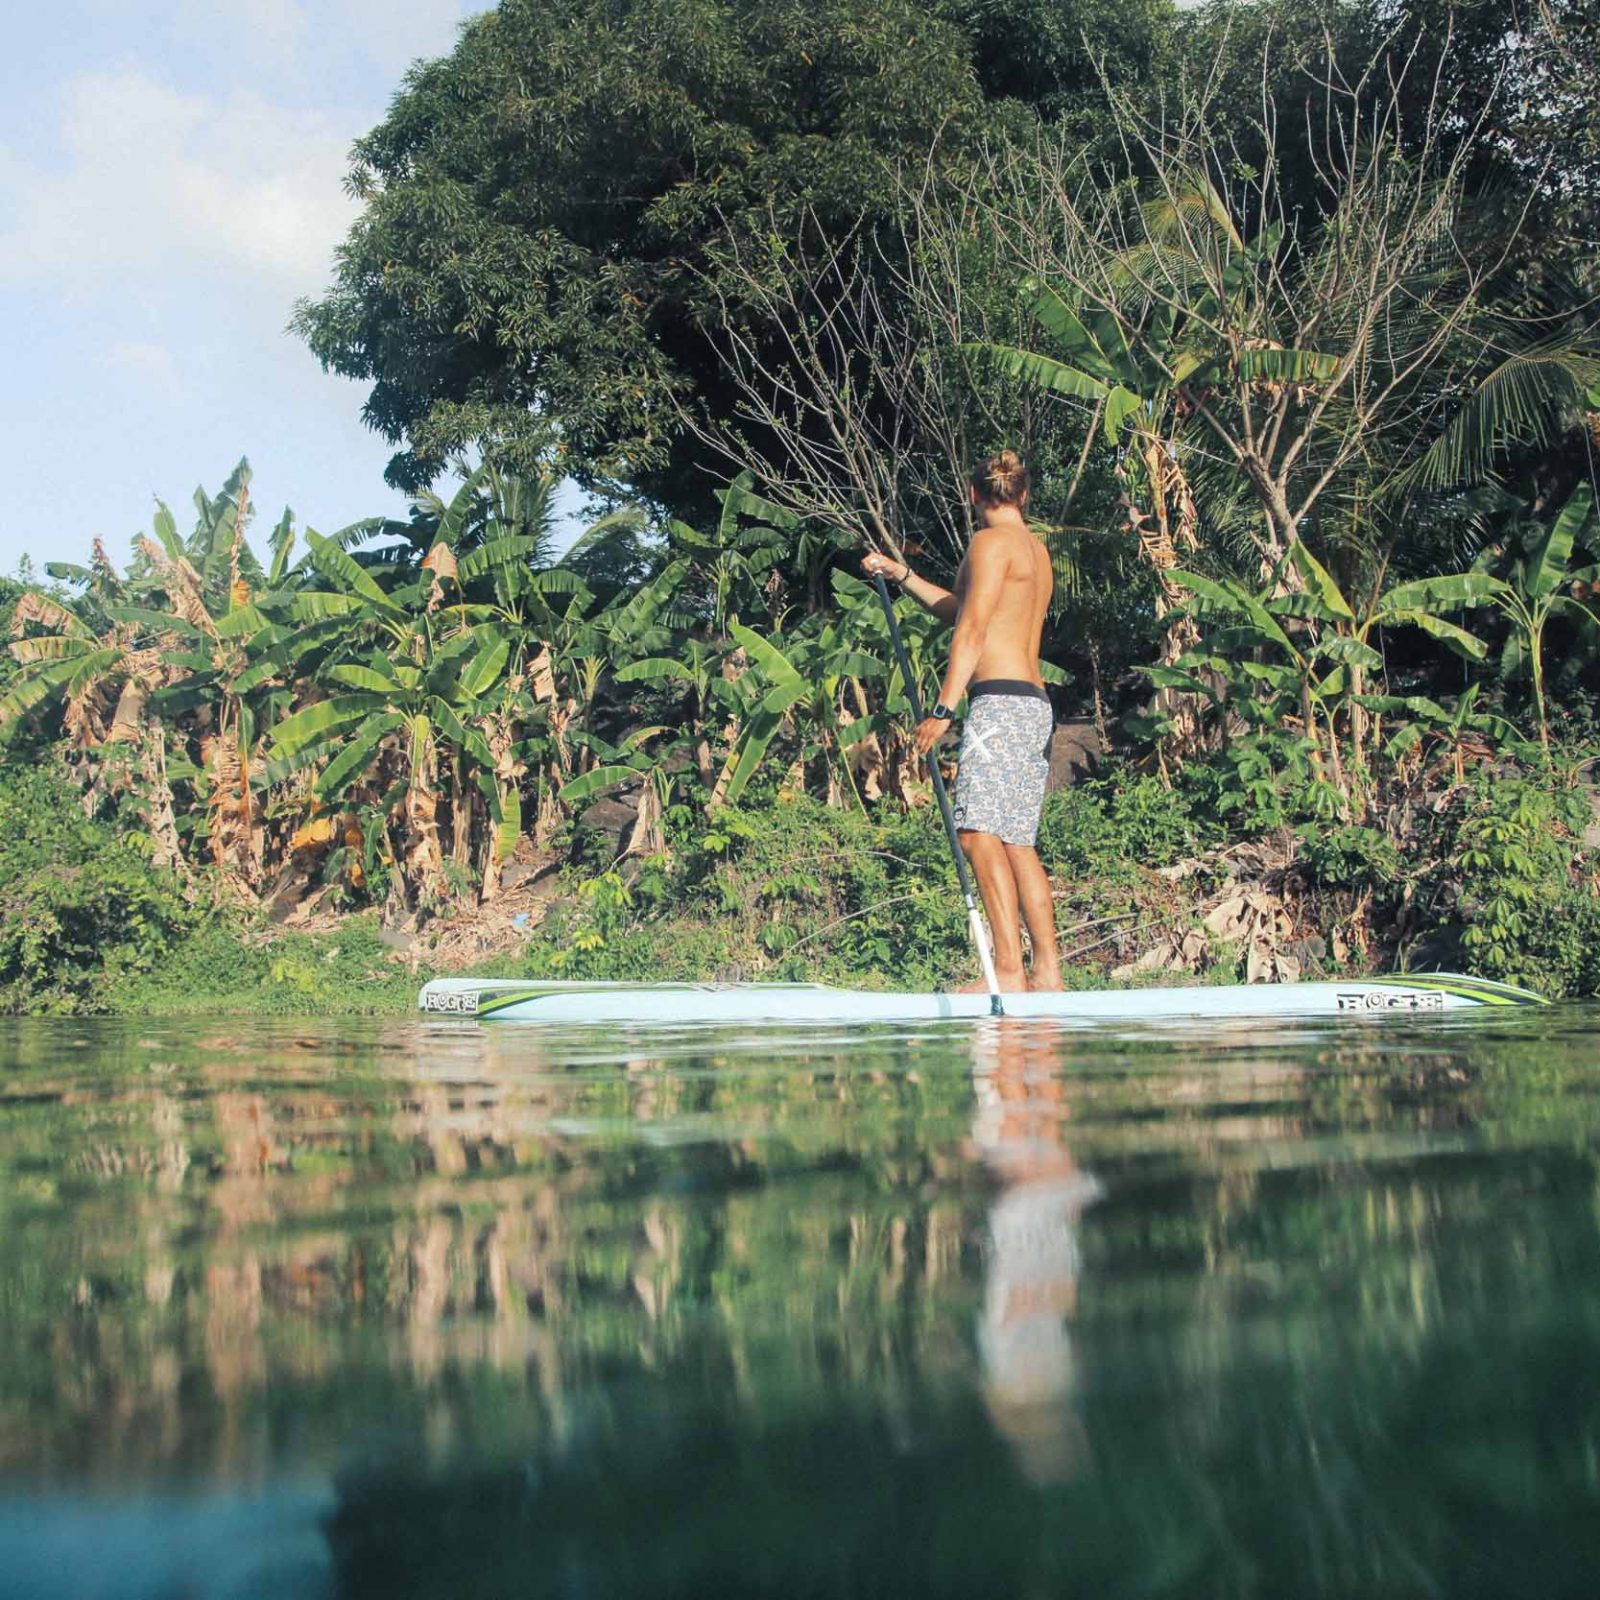 Stand Up Paddle Board Nicaragua